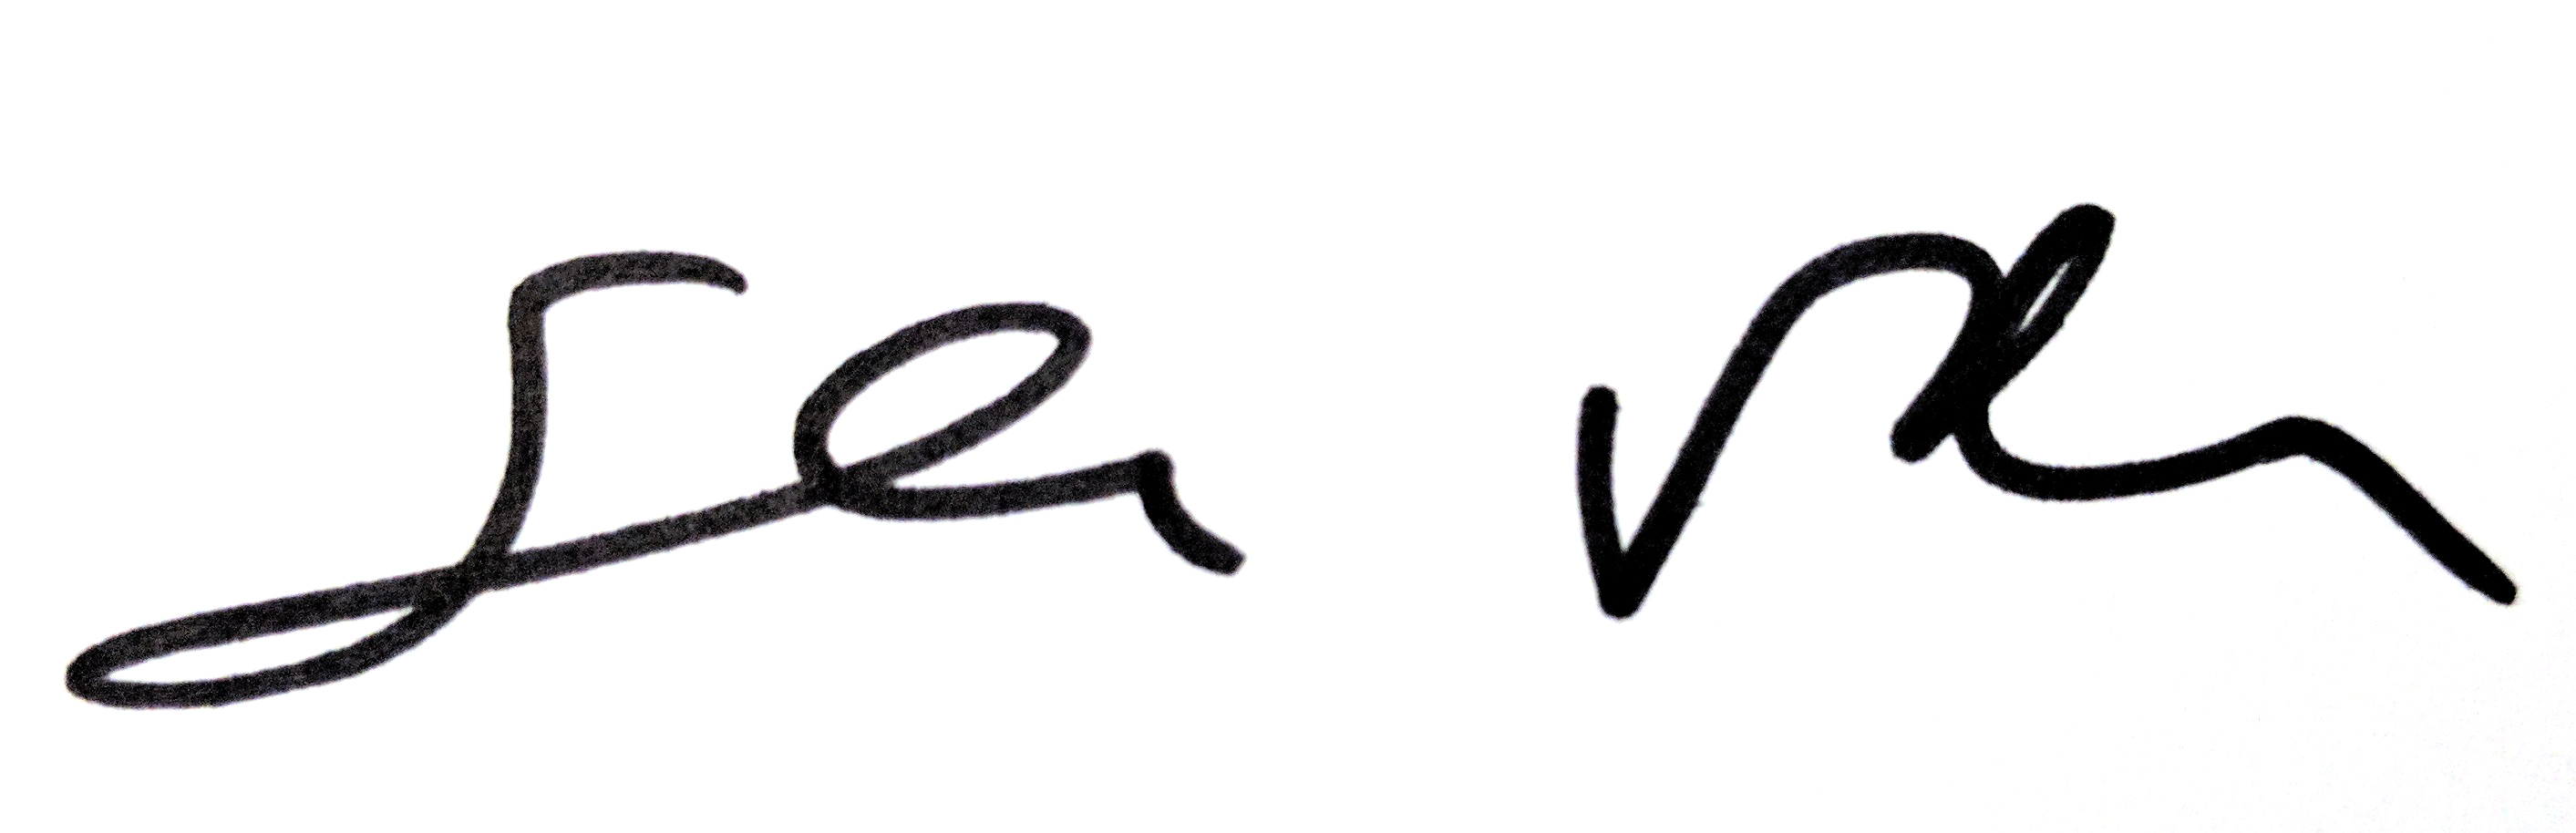 salvATORE ventura's Signature